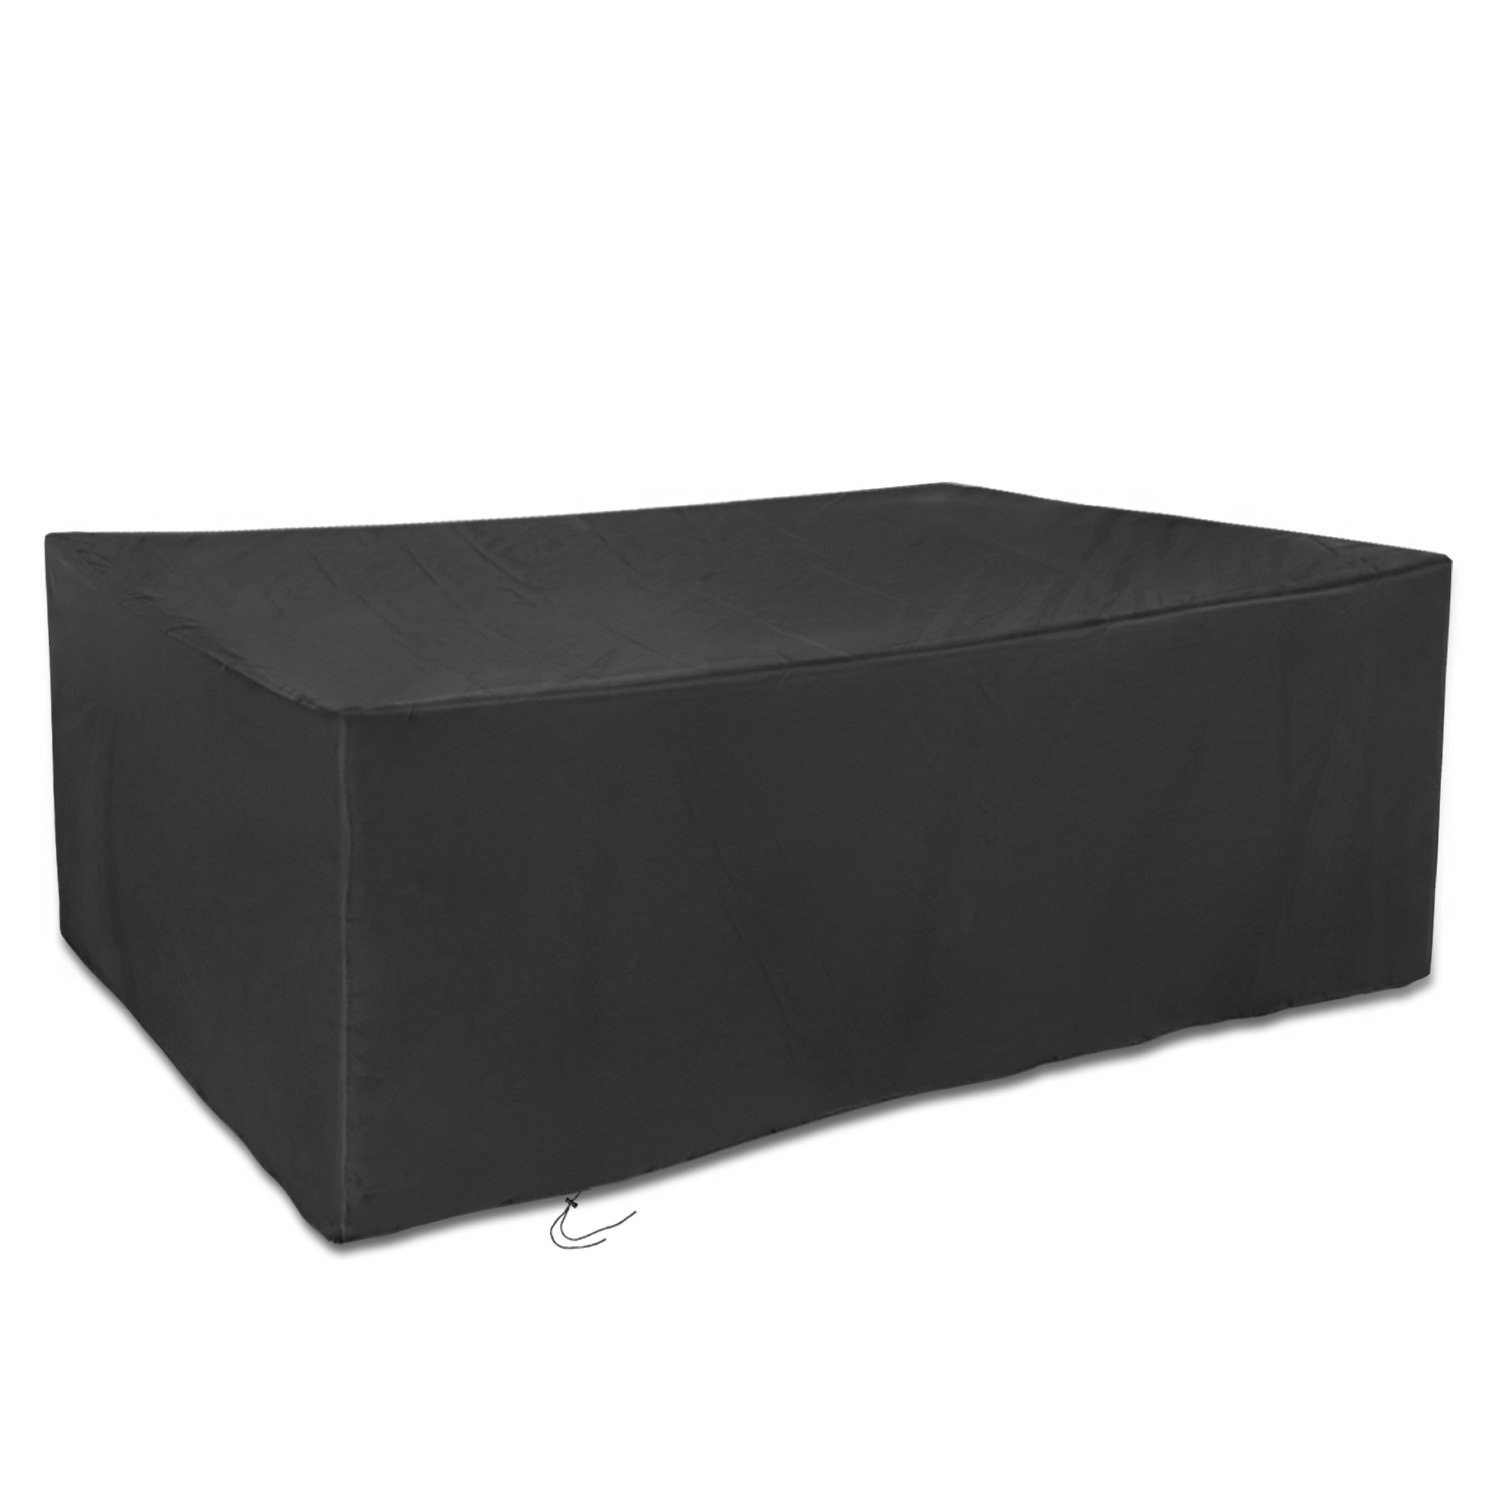 Dokon Large Patio Set Cover, 420D Oxford Fabric Outdoor Garden Furniture Cover, Rectangular (270 x 180 x 89cm) - Black